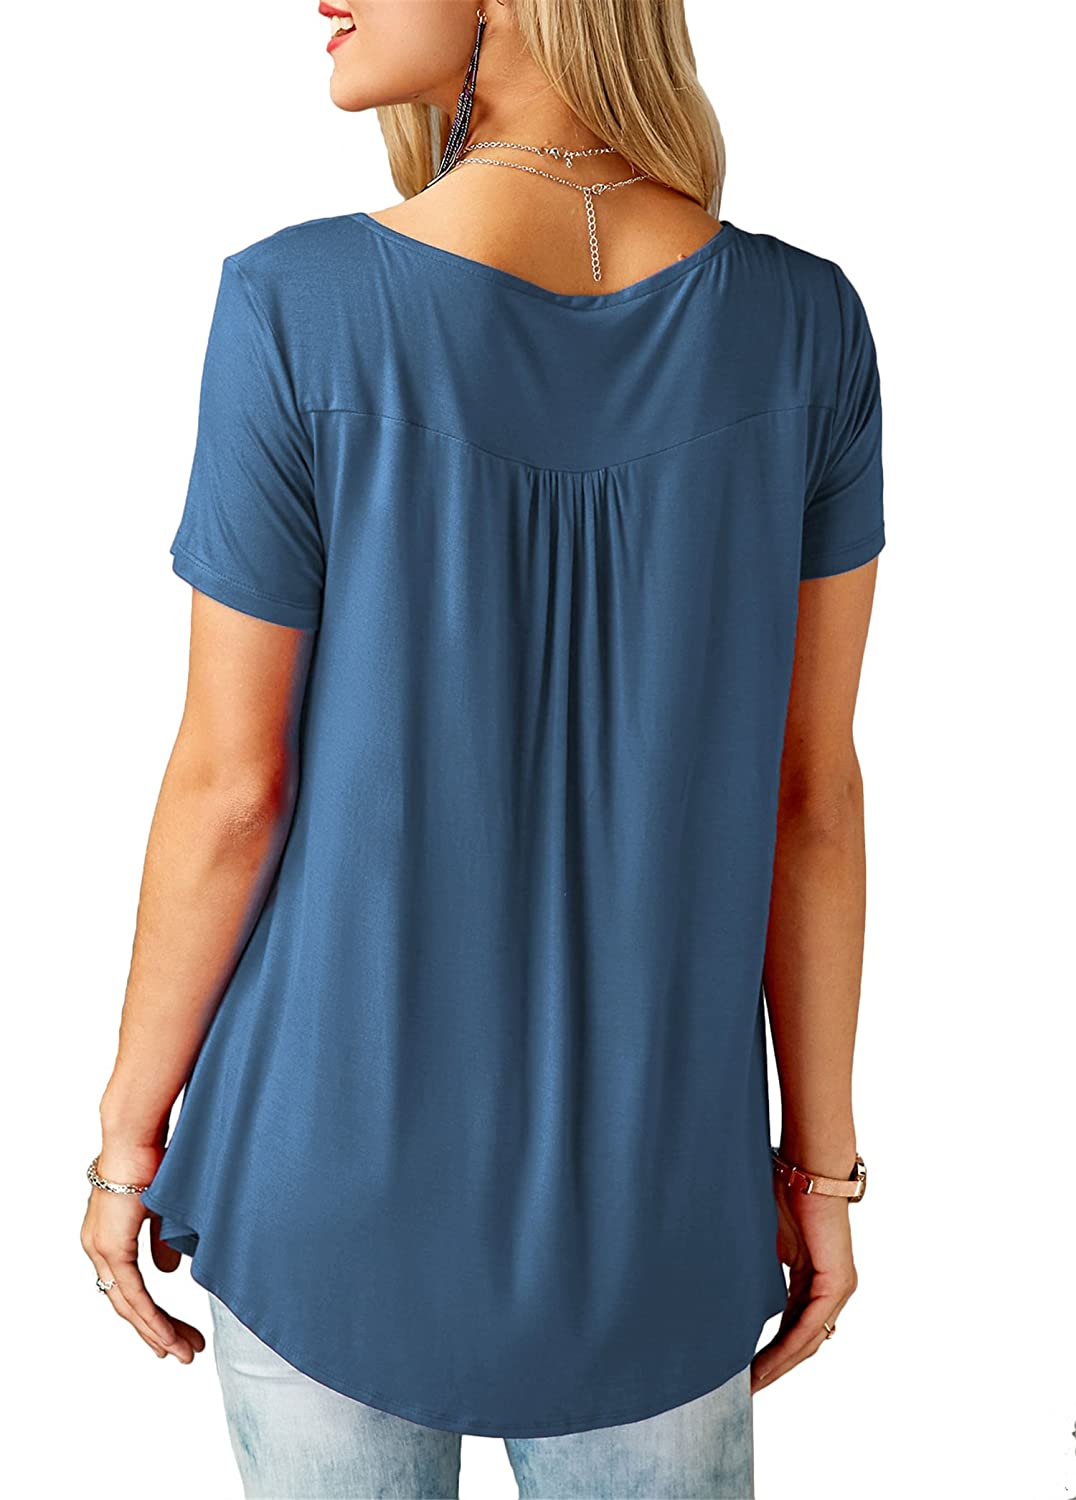 onlypuff Womens Short Long Sleeve Shirts Ruffle Casual Blouse Tunic Tops Solid Color